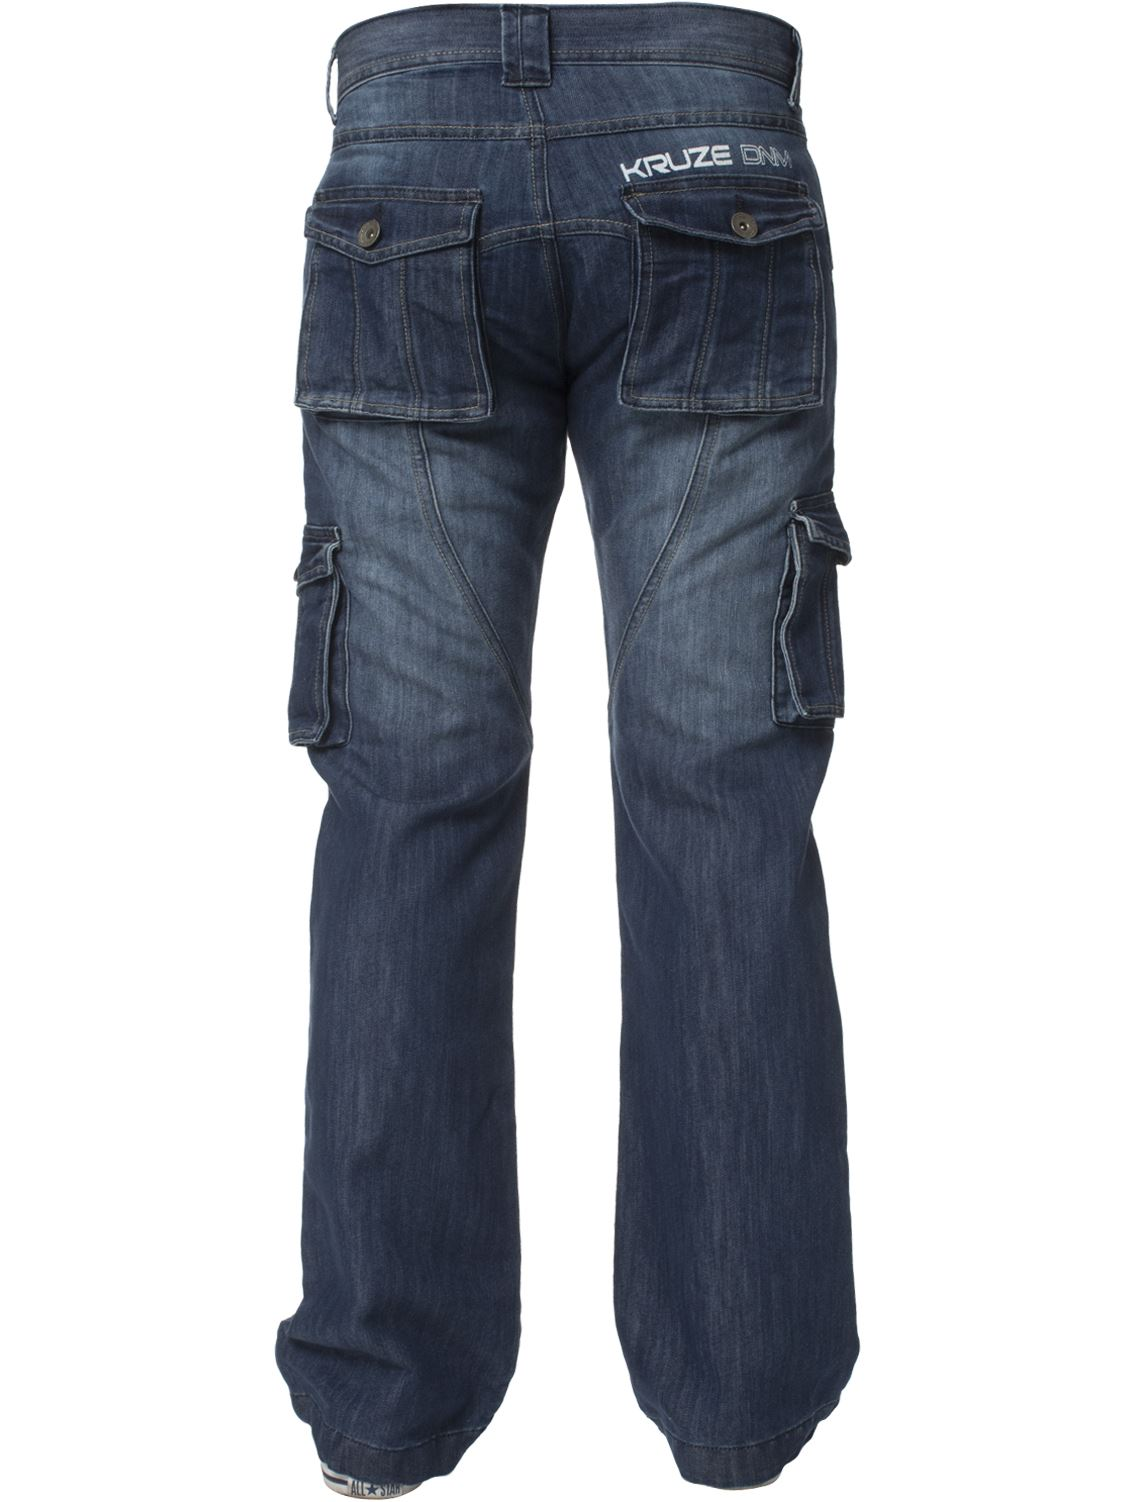 Mens-Cargo-Jeans-Combat-Trousers-Heavy-Duty-Work-Casual-Big-Tall-Denim-Pants thumbnail 58